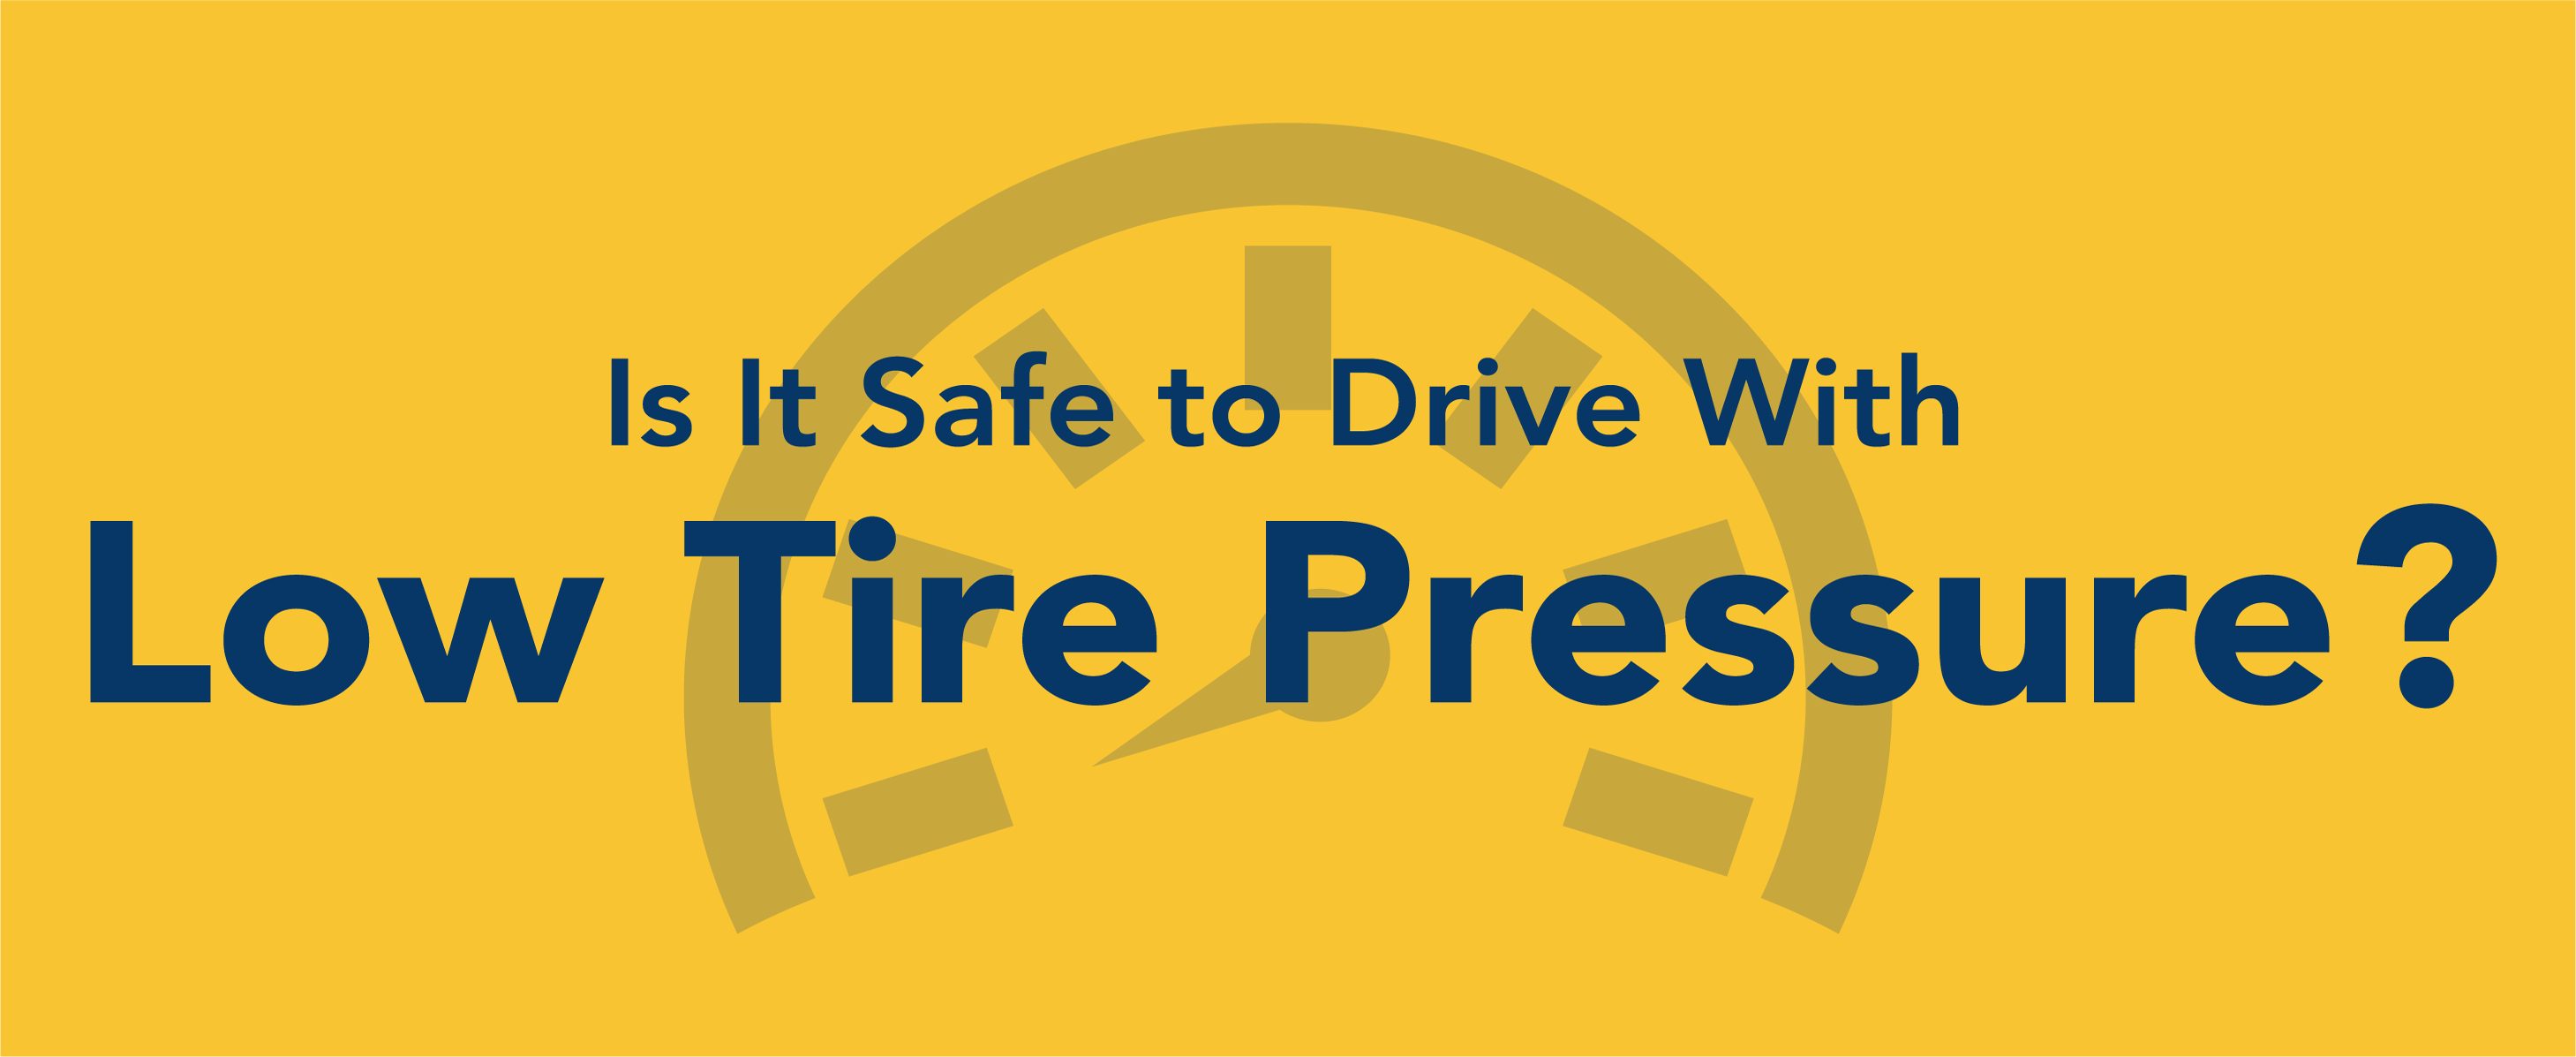 Is it safe to drive with low tire pressure?